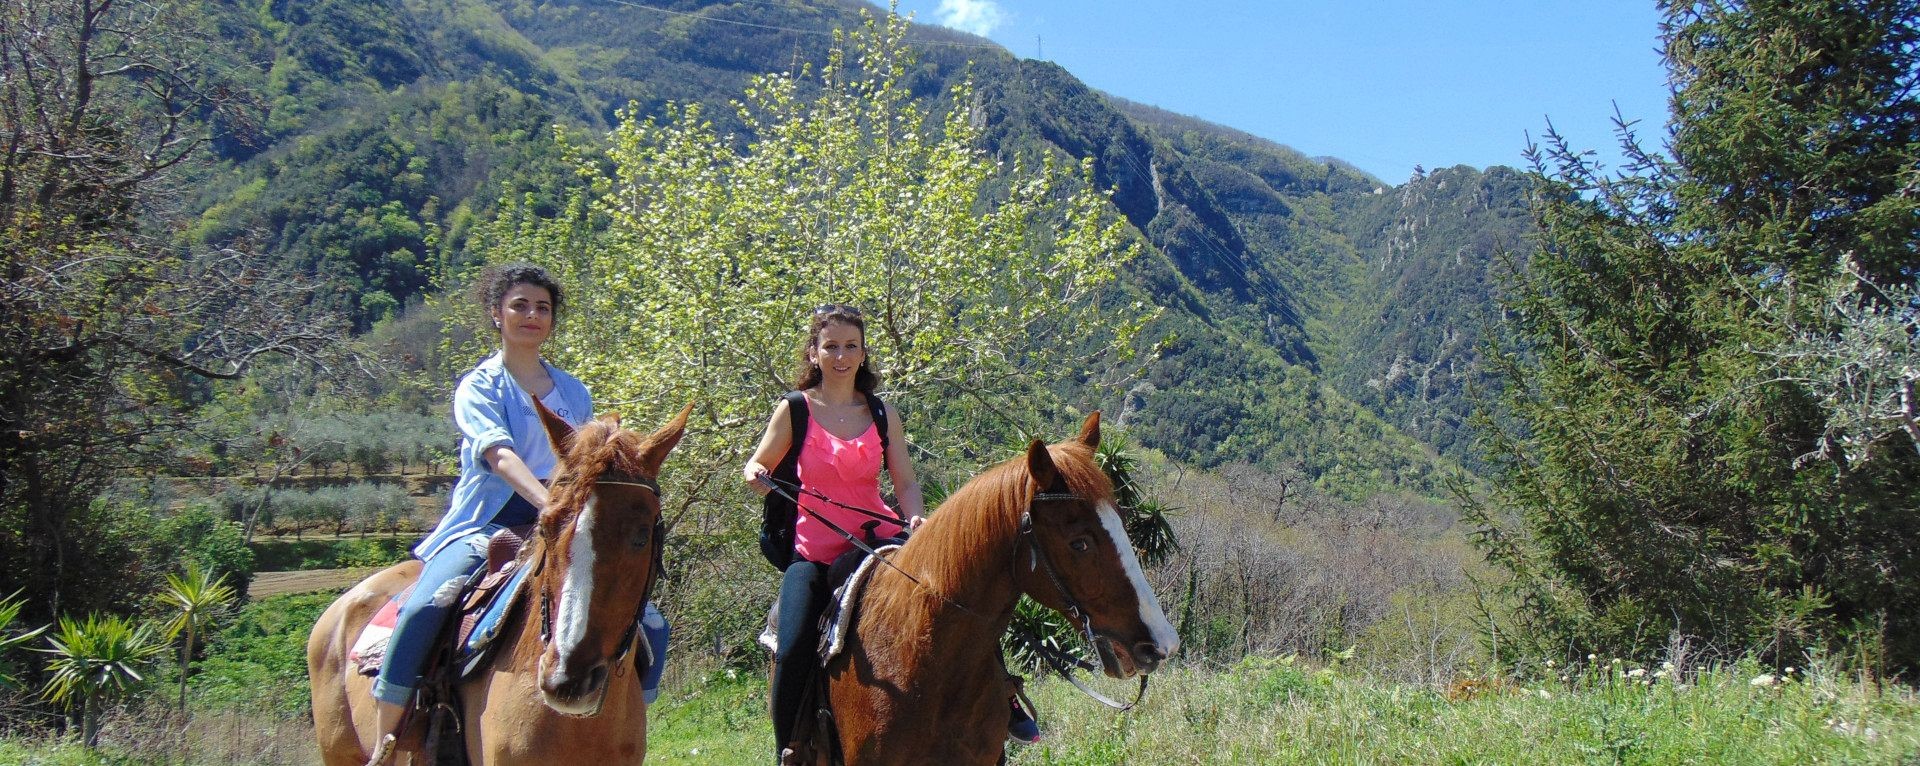 Two girls riding a horse in the Vesuvius National Park